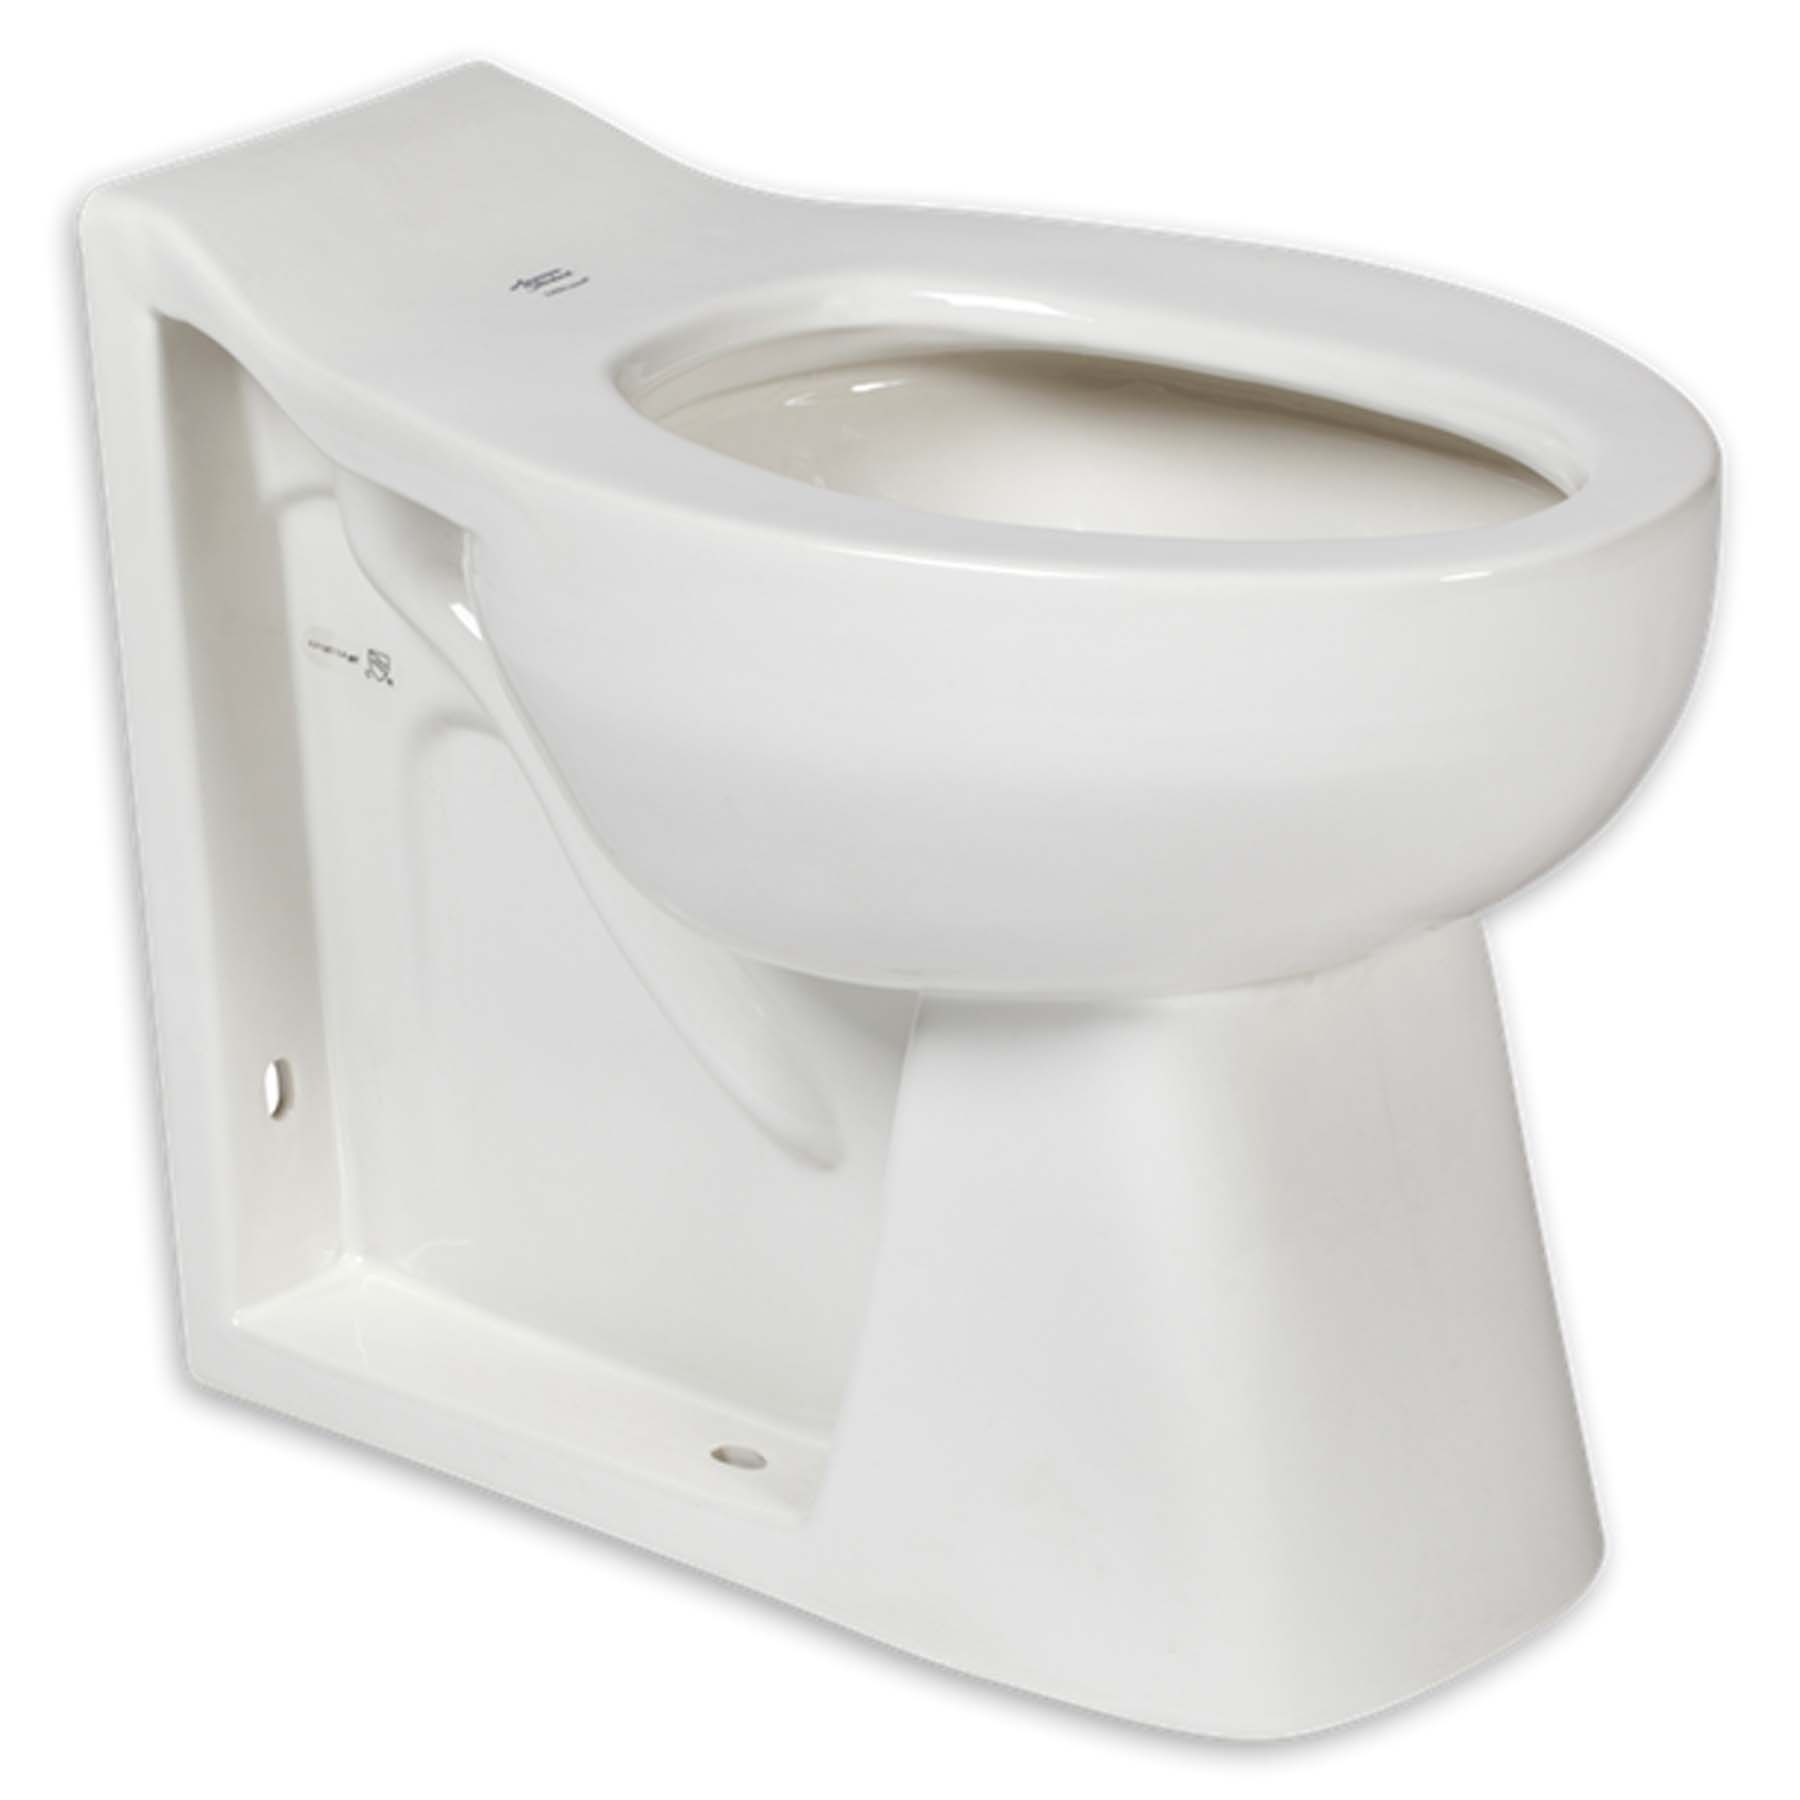 Floor Wall Mount Toilet Behavioral Safety Products